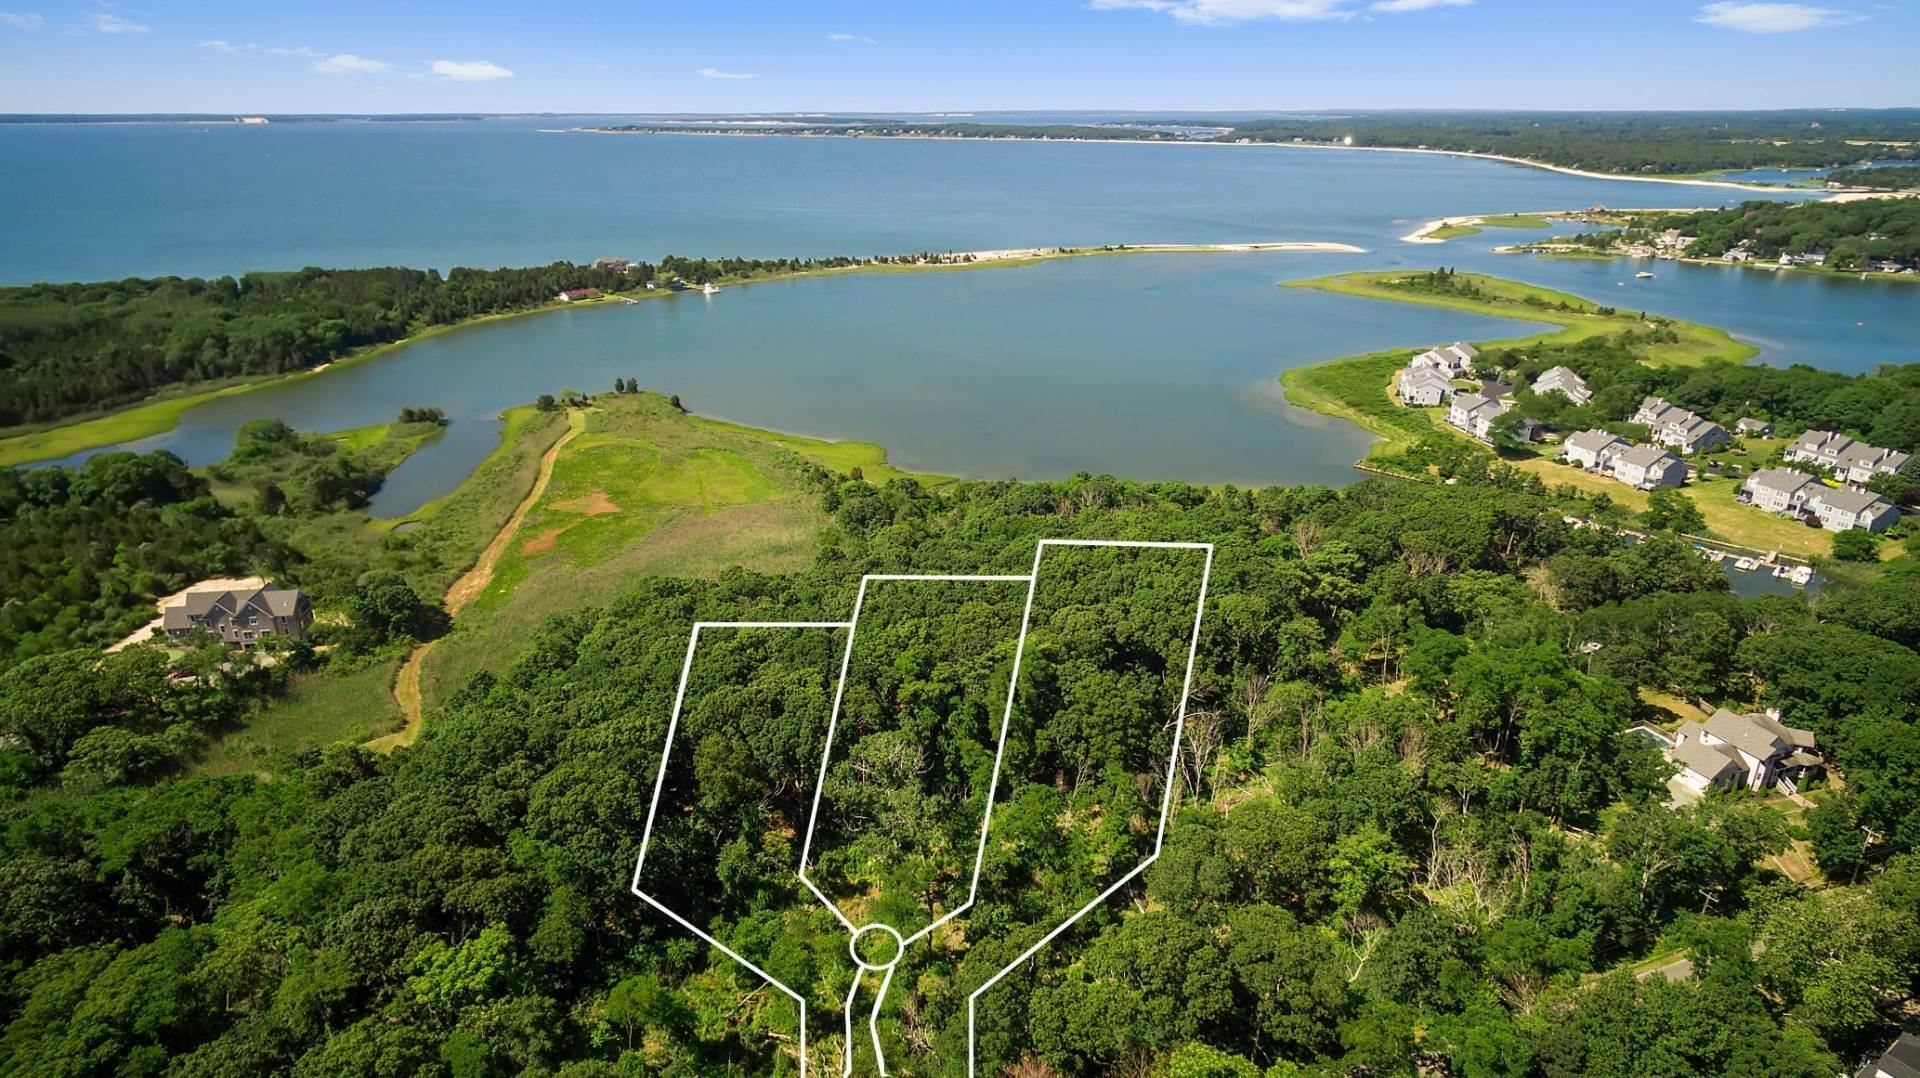 Land for Sale at Southold 14.5 Waterfront Acres 9230 Main Bayview Road, Southold, NY 11971